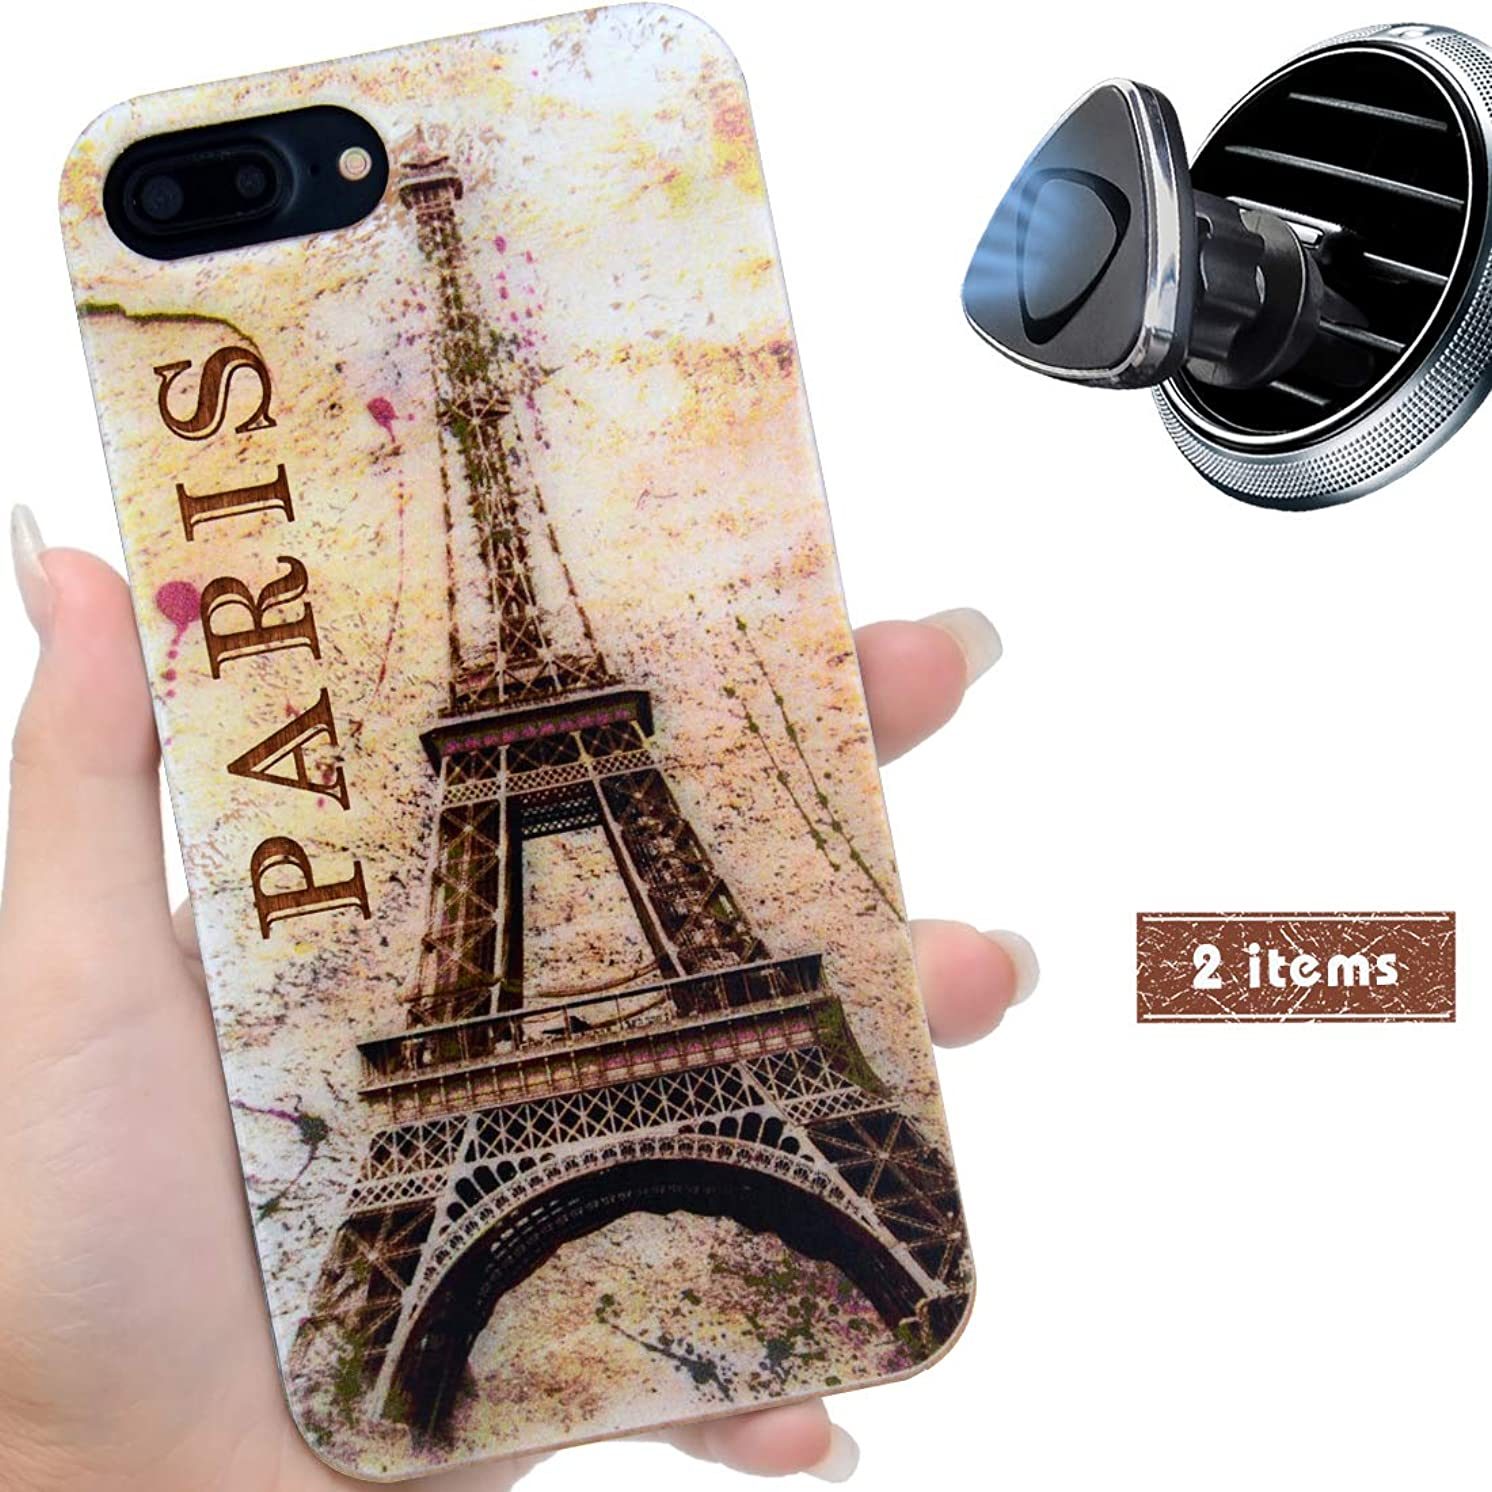 iProductsUS Wood Phone Case Compatible with iPhone 8,7,6/6S (Regular Size) and Magnetic Mount-UV Print Colorful Eiffel Tower Wooden Cases,Built-in Metal Plate,TPU Rubber Protective Covers (4.7